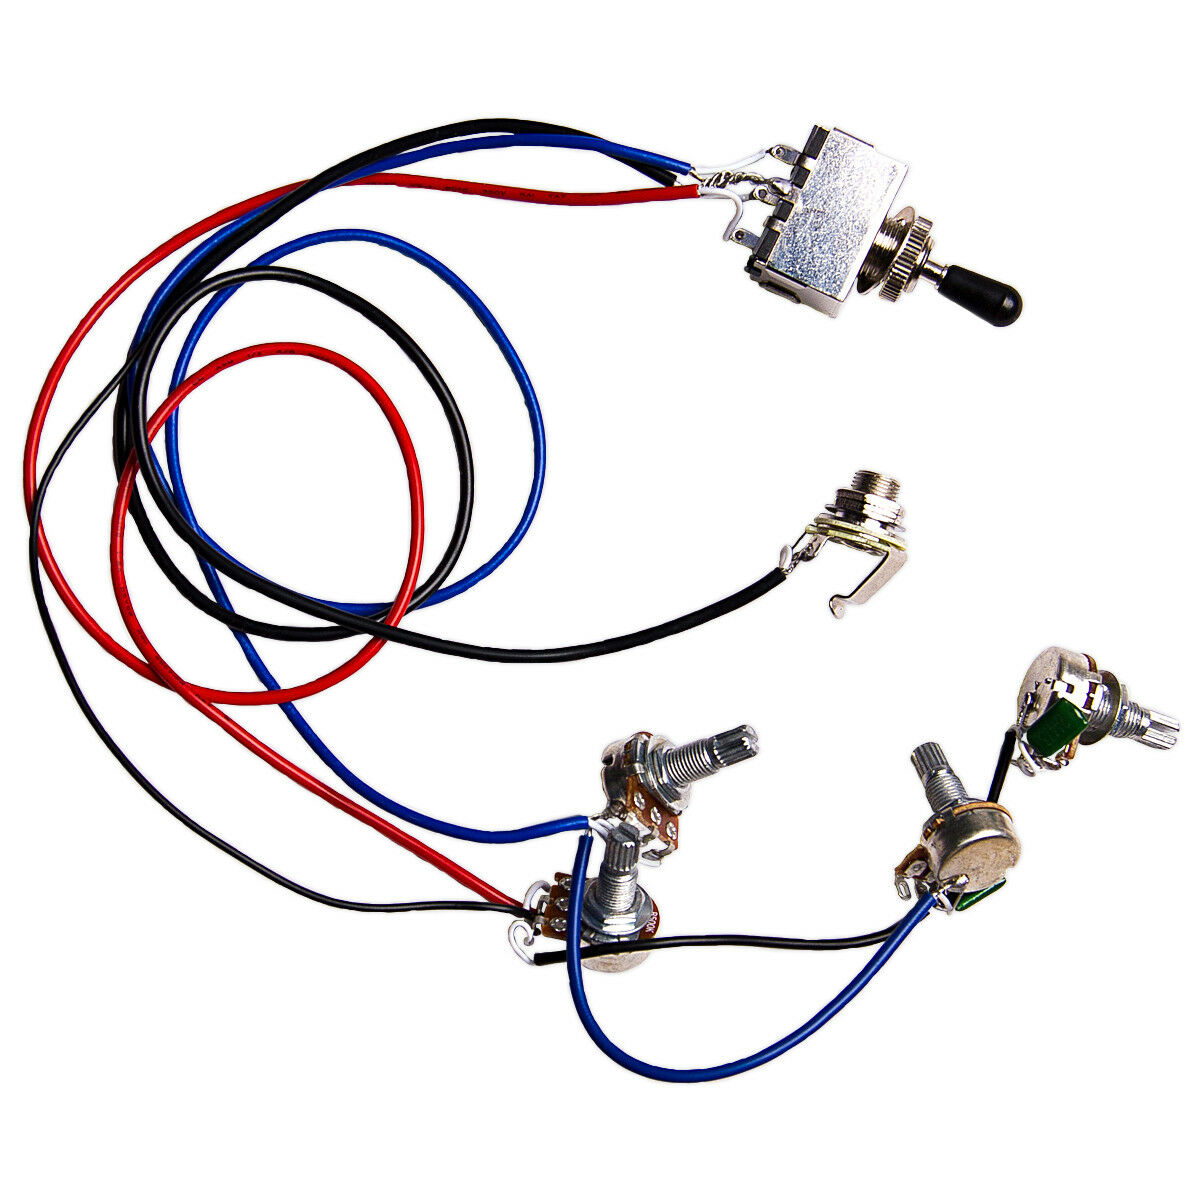 Guitar Wiring Harness Kit 2v2t 3 Way Switch Ffor Parts Pickup 1v2t 5 500k Pots For Fender Strat Replacement